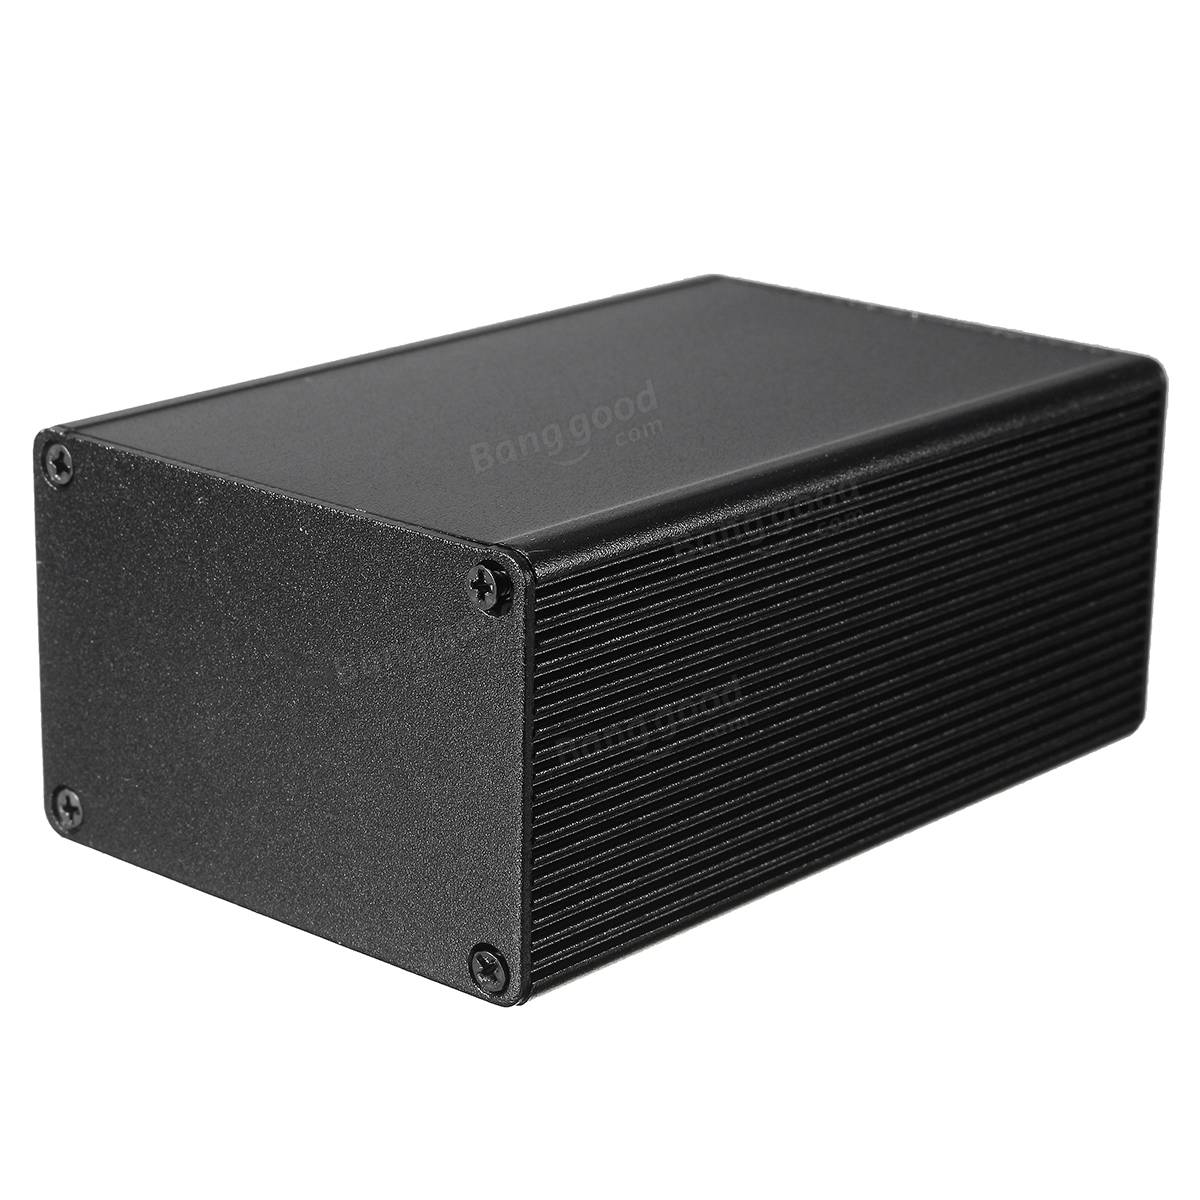 100*66*43mm Black Aluminum Box Instrument Enclosure Case Electronic DIY Project